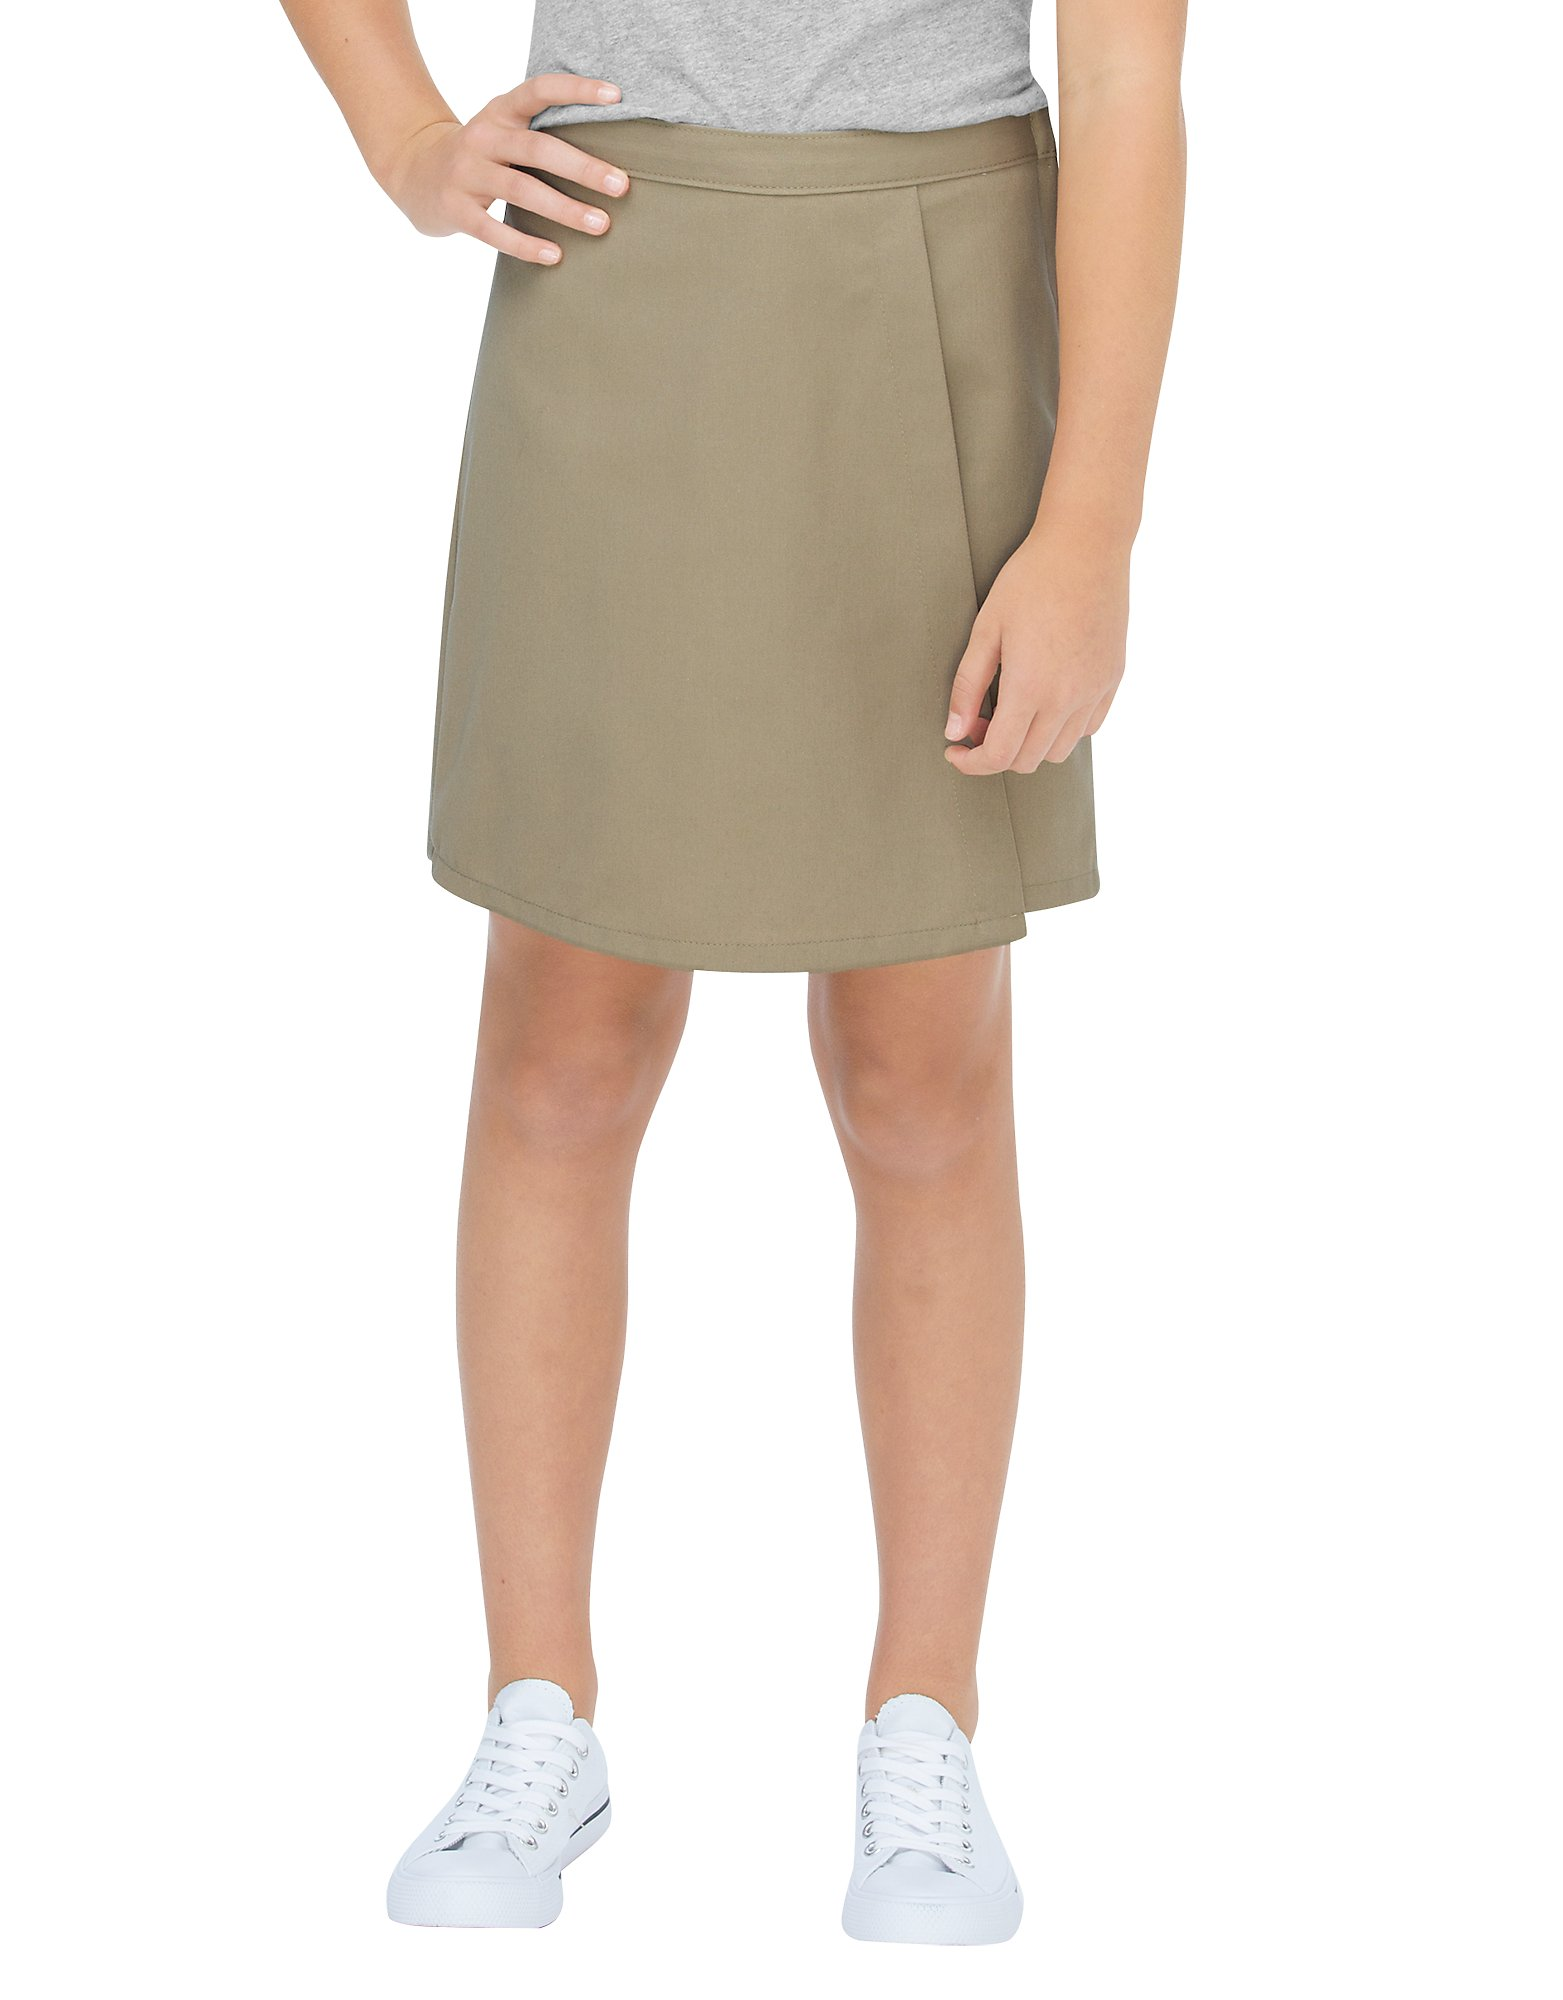 Girls' Faux Wrap Skort, 4-16 - Military Khaki (KH)